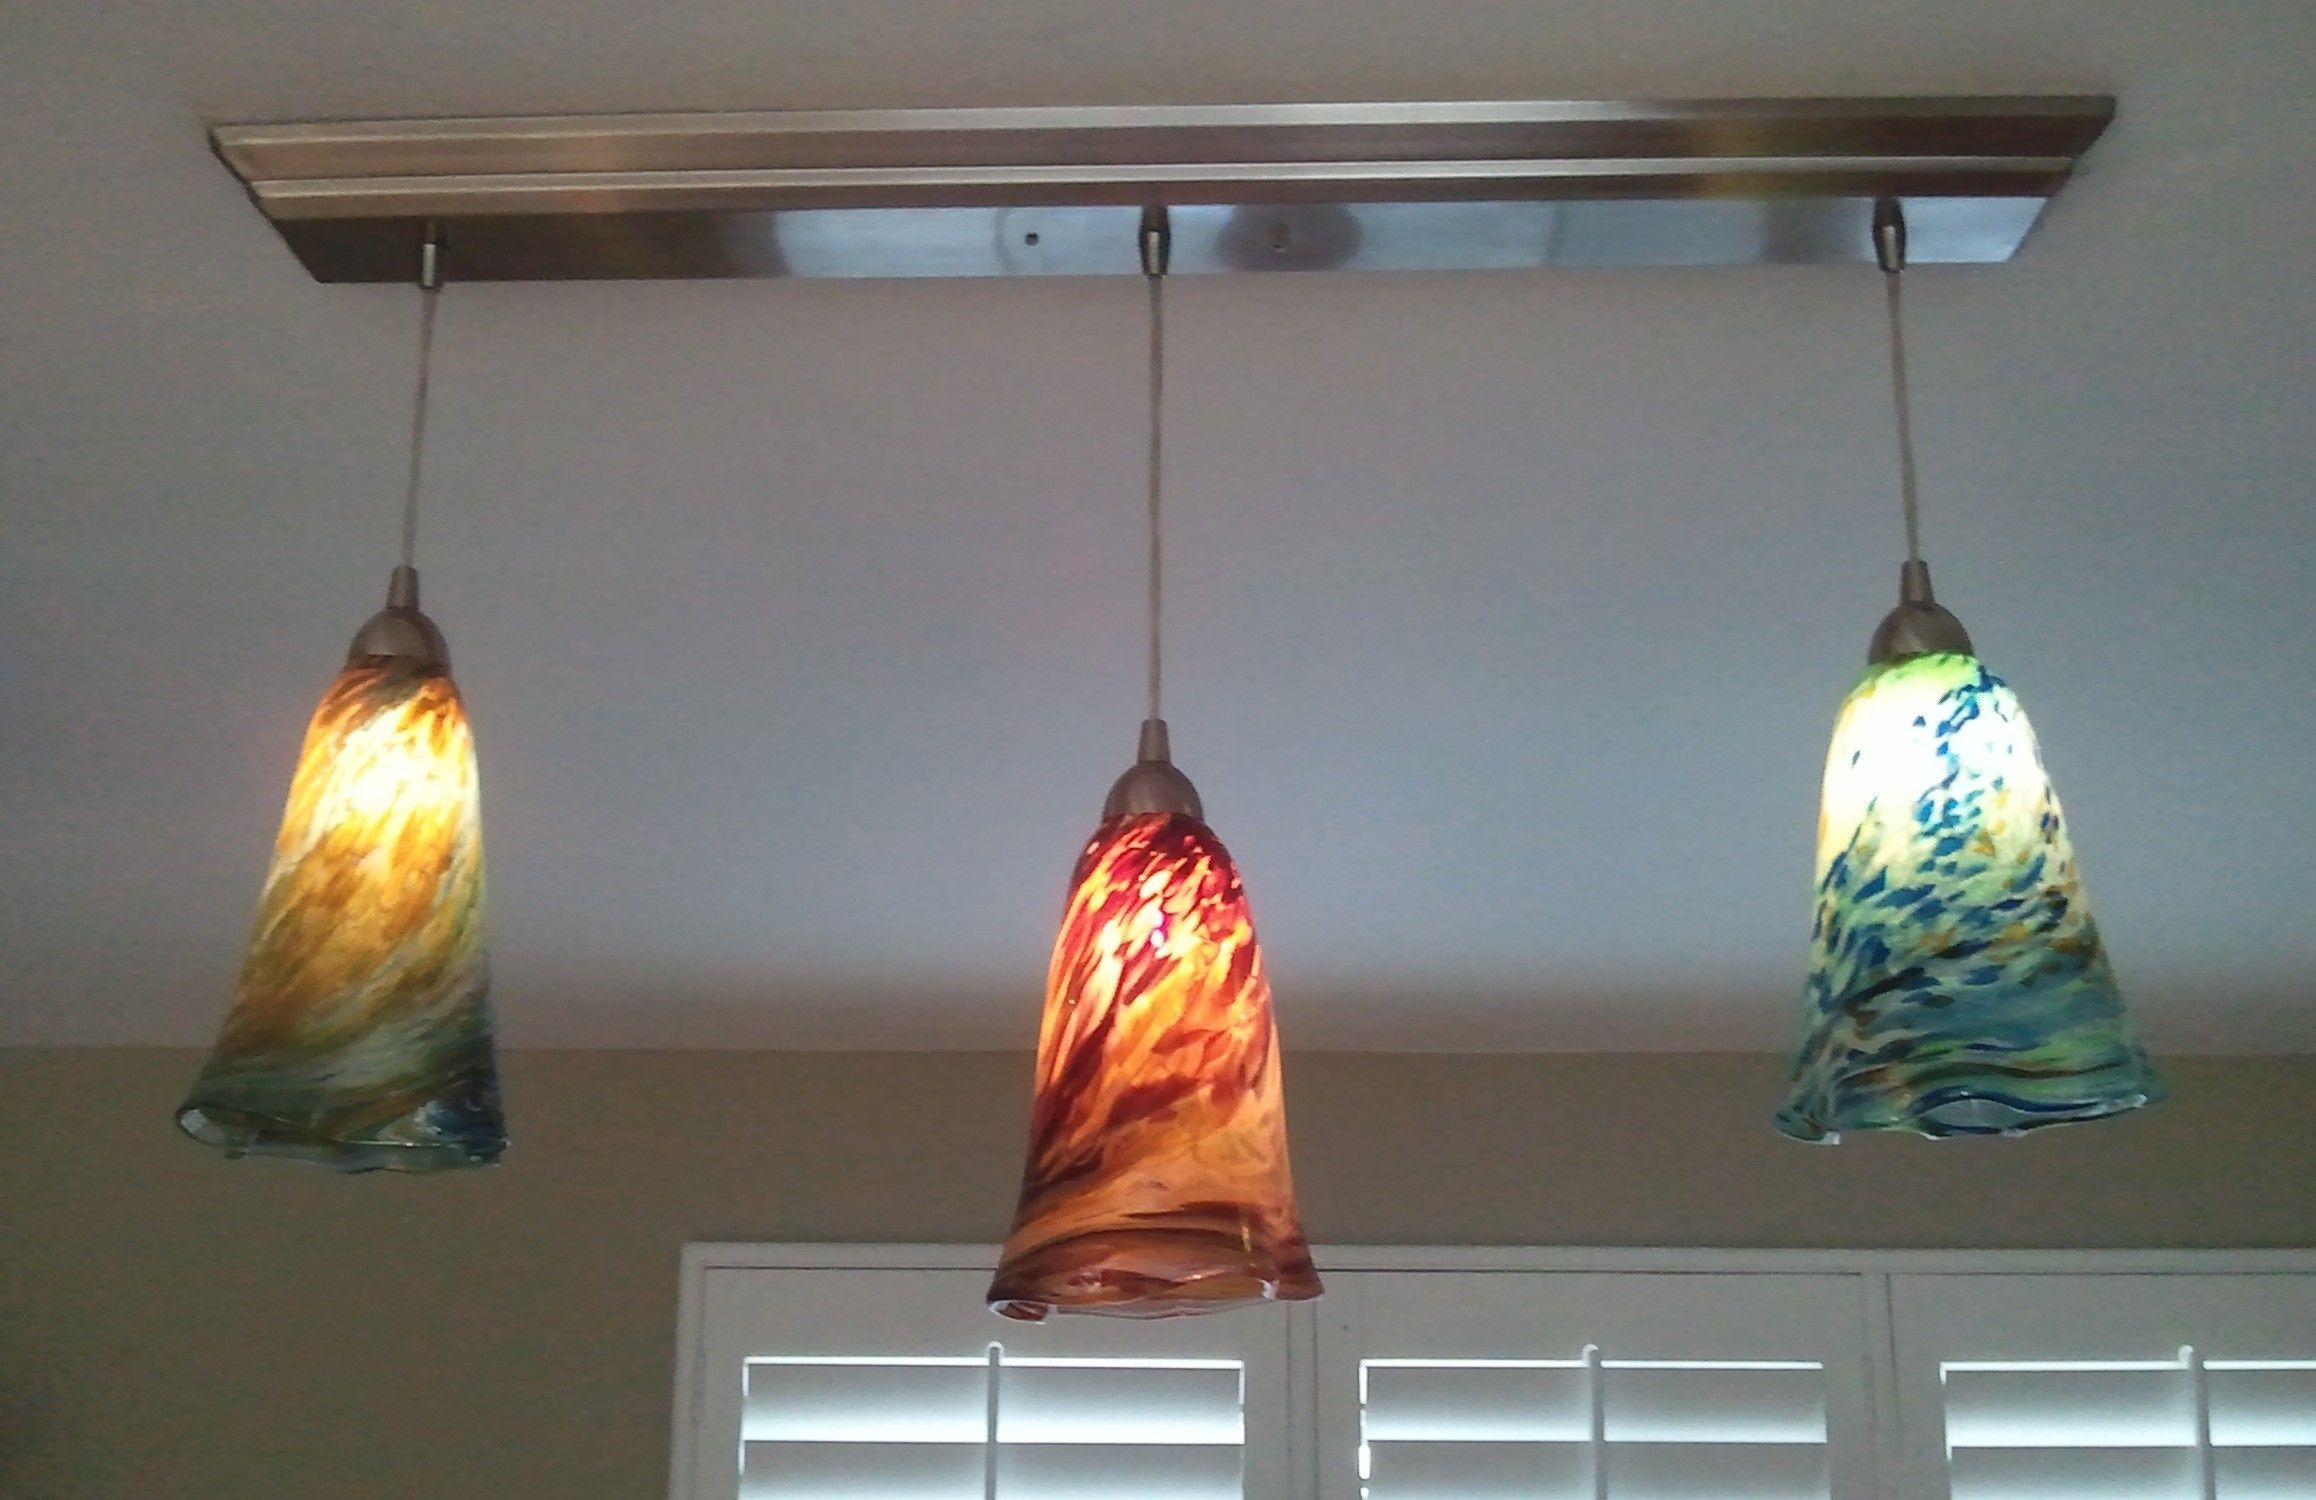 Replacement Lamp Shades For Pendant Lights Rusticlampshadedriftwood Glass Pendant Light Rustic Lamp Shades Pendant Light Shades